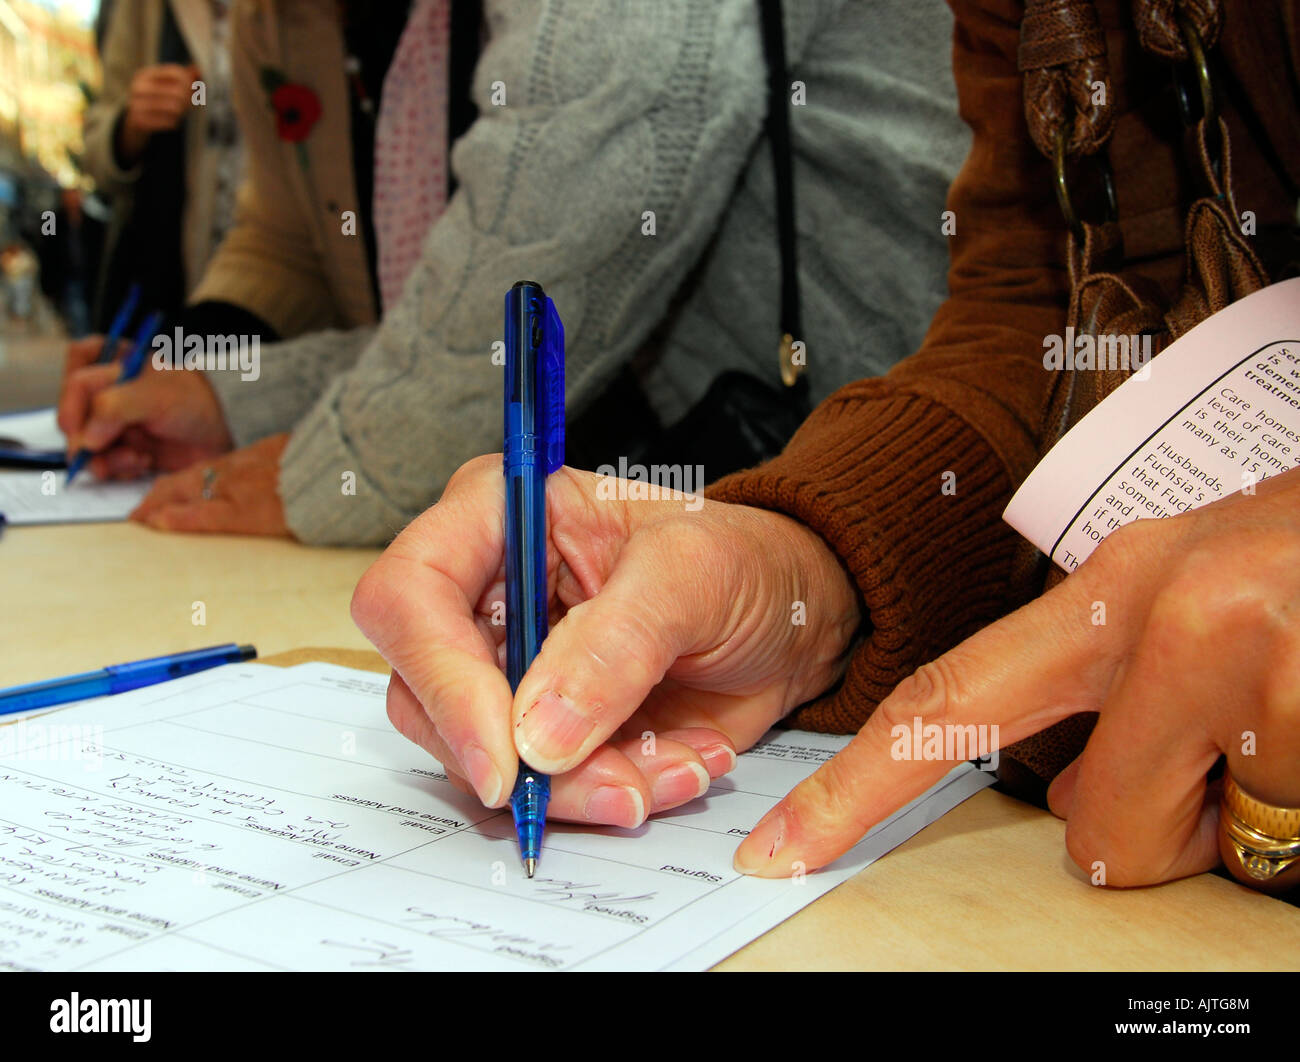 Members of the public signing a petition against cuts in mental health services, Kingston, Surrey, UK. - Stock Image